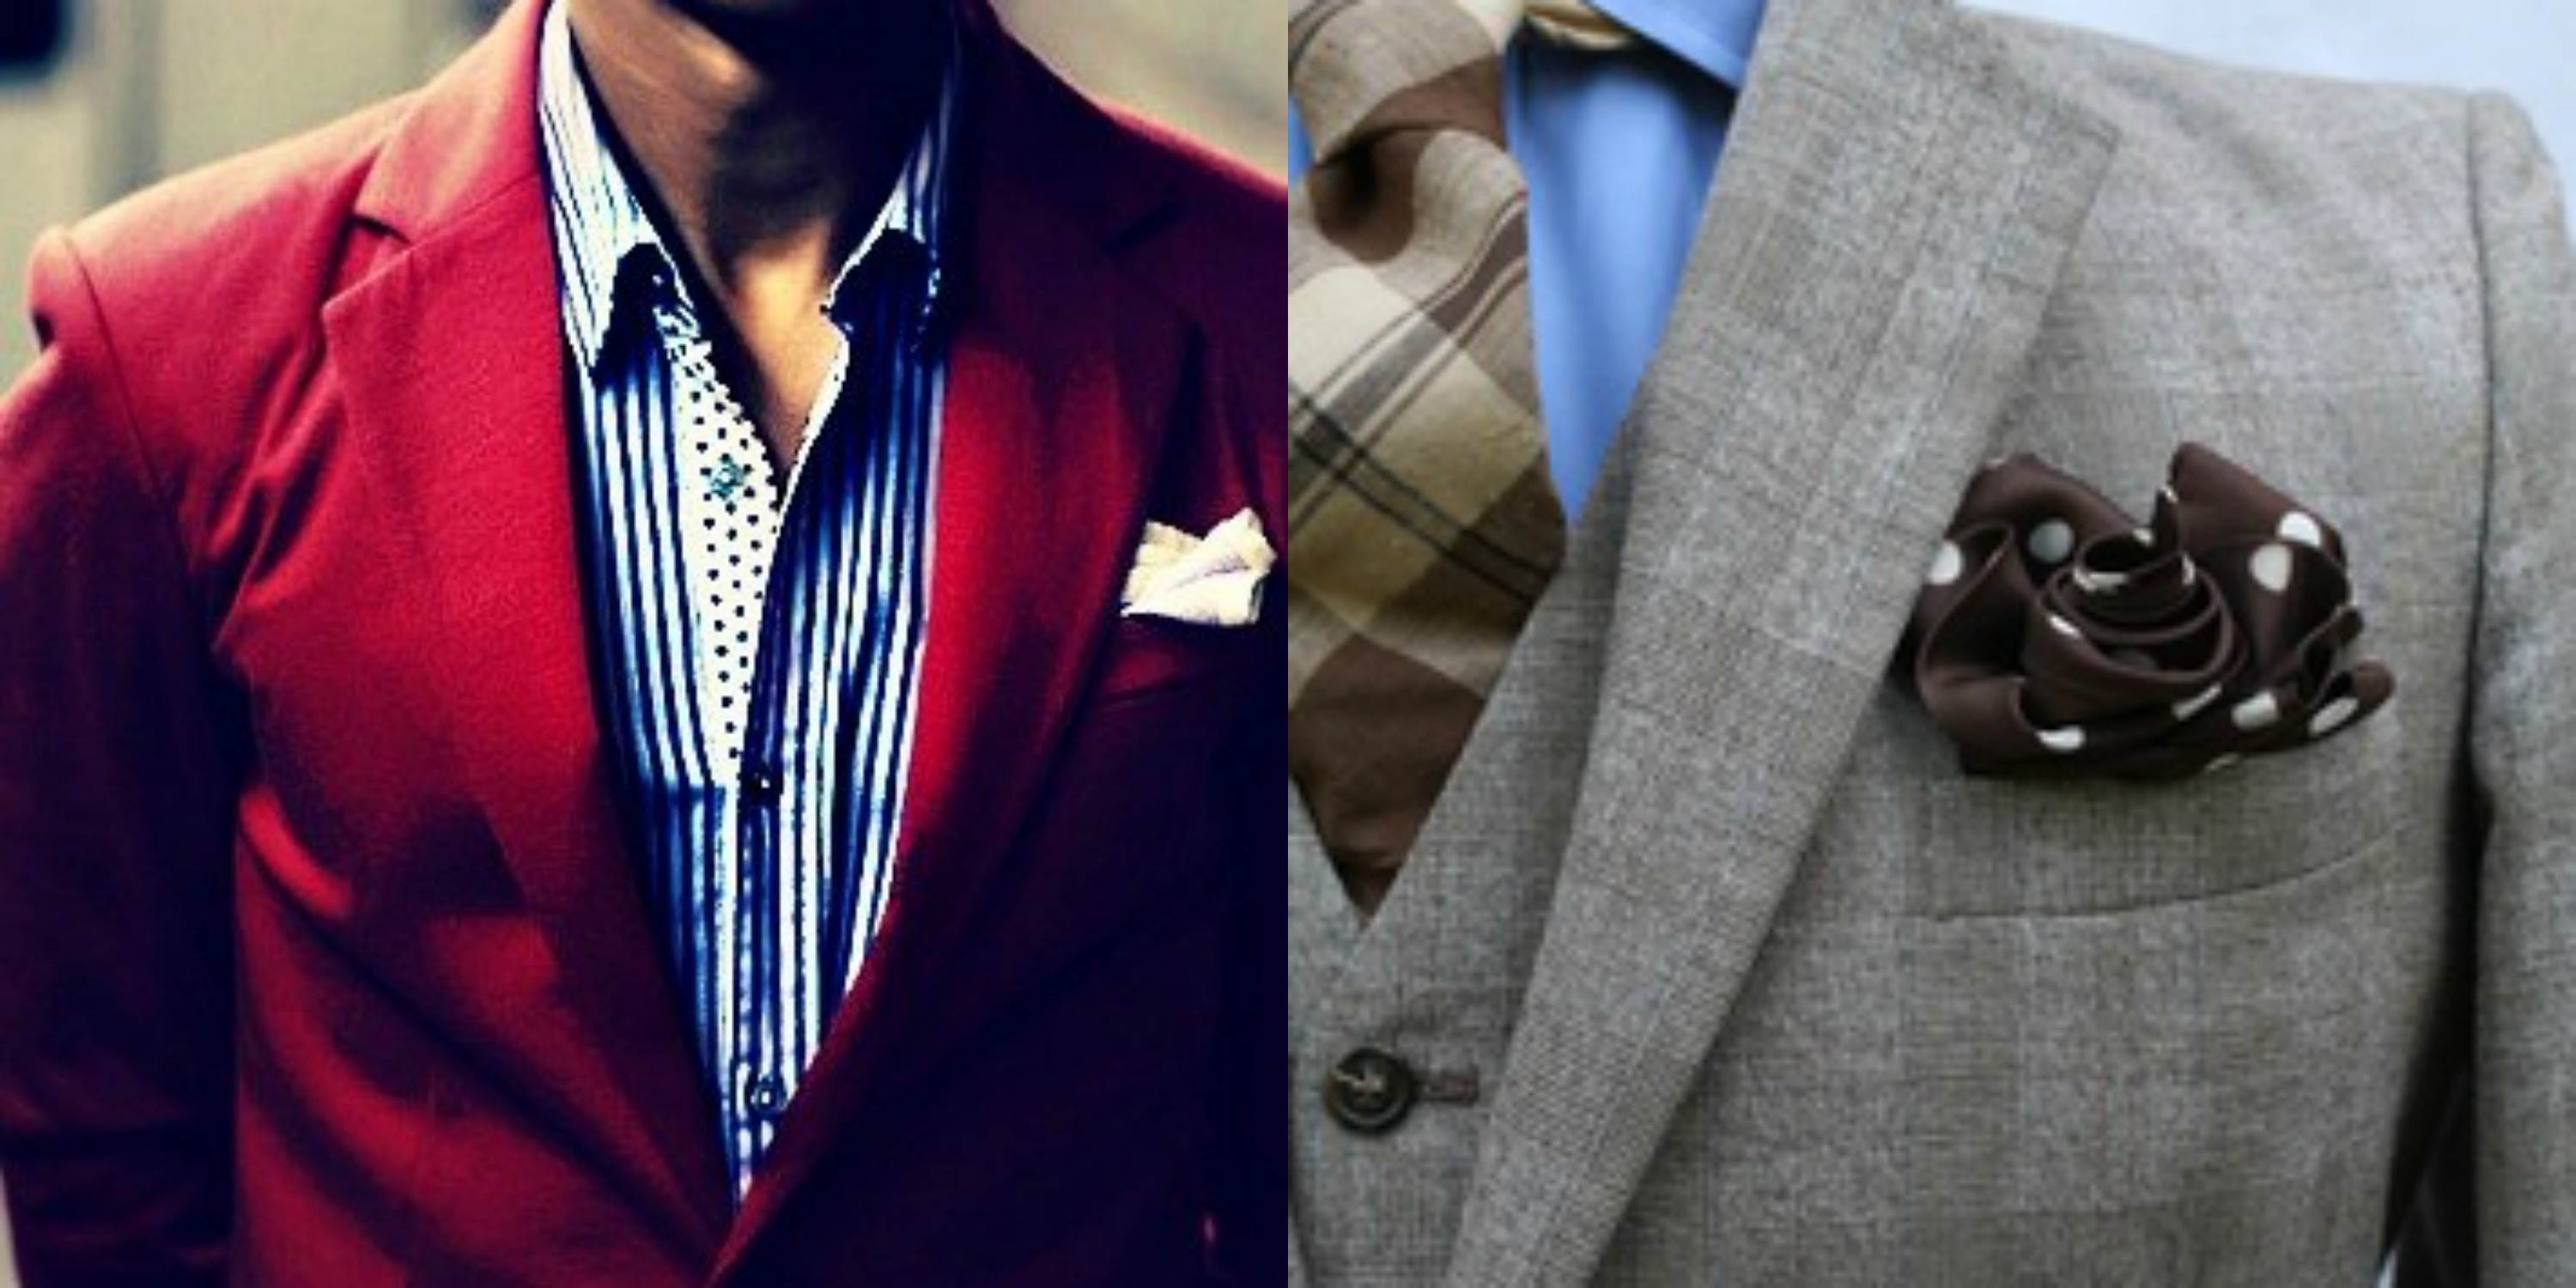 Mens jacket button rules - 15 Rules Every Well Dressed Man Should Know